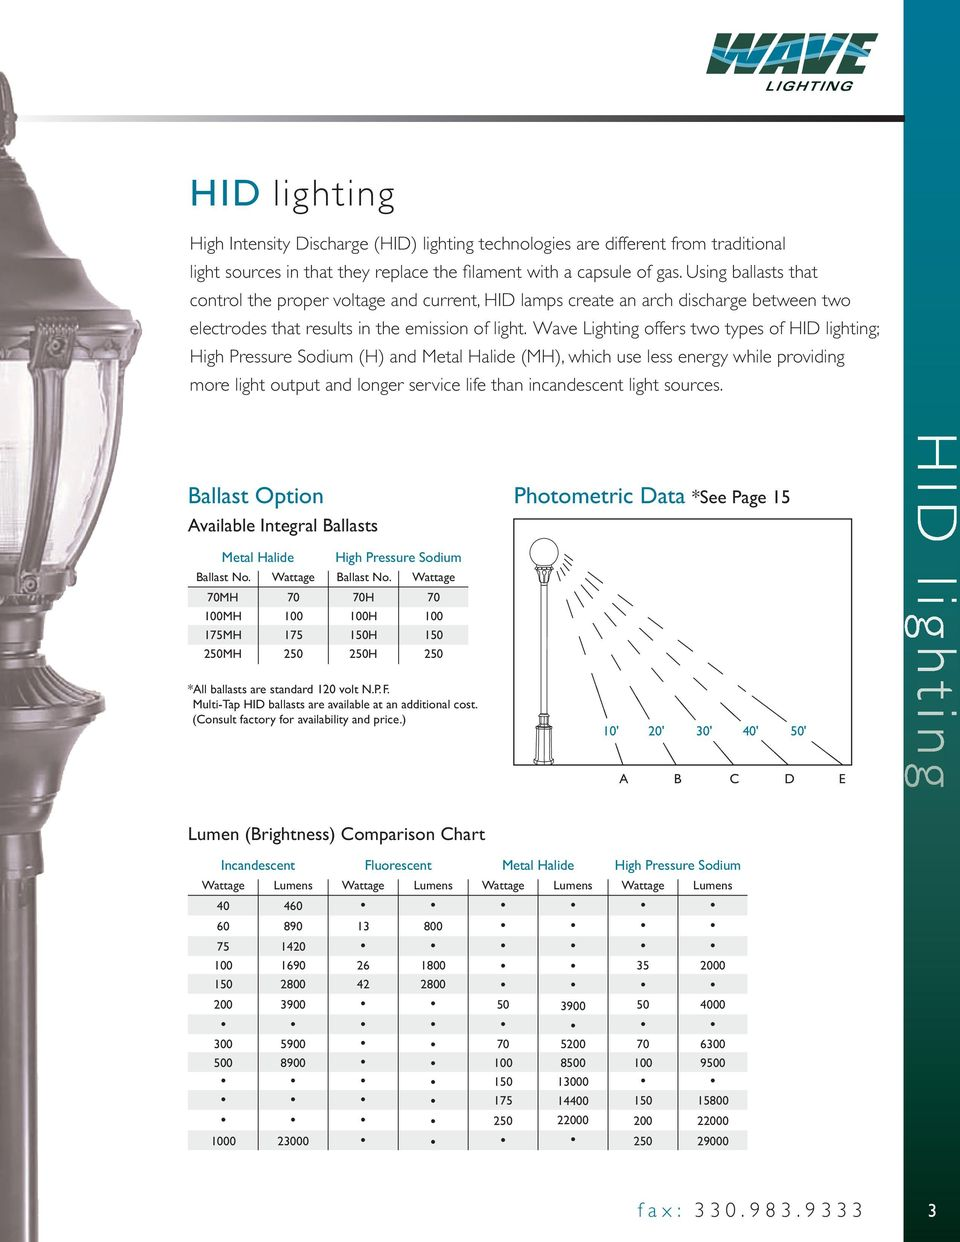 Wave Lighting offers two types of HID lighting; High Pressure Sodium (H) and Metal Halide (MH), which use less energy while providing more light output and longer service life than incandescent light